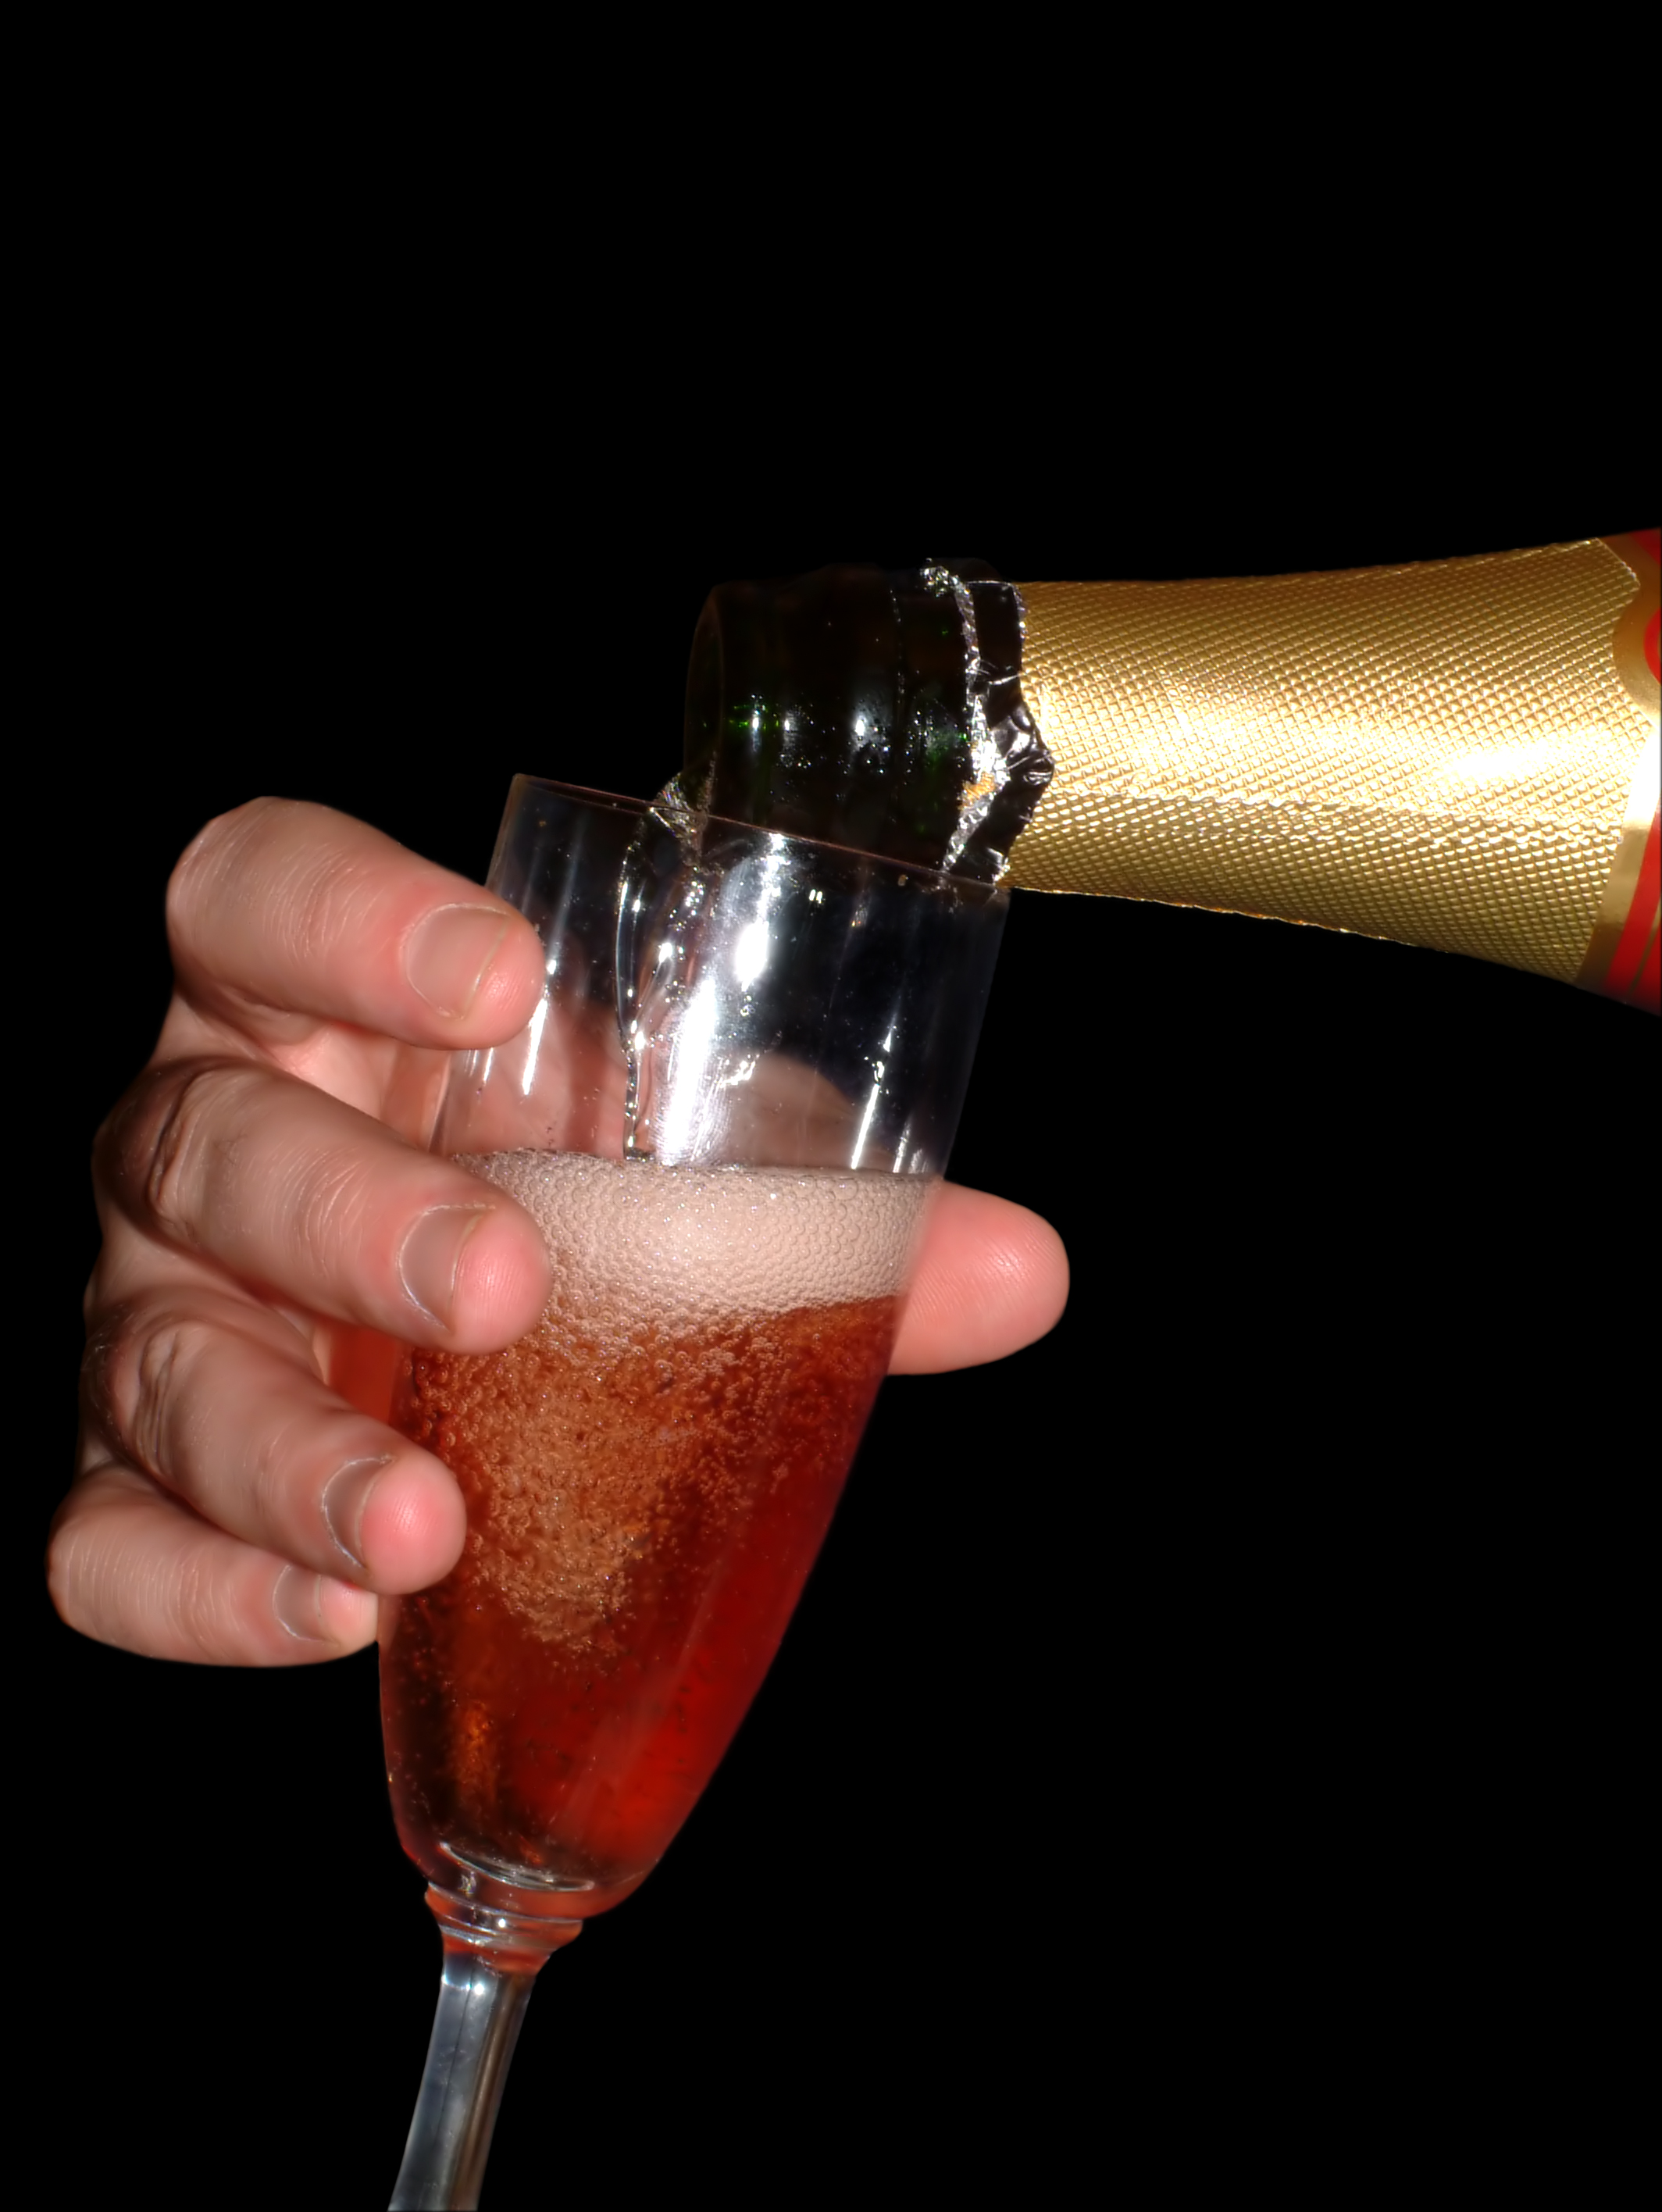 glass-of-champaign-1326011.jpg